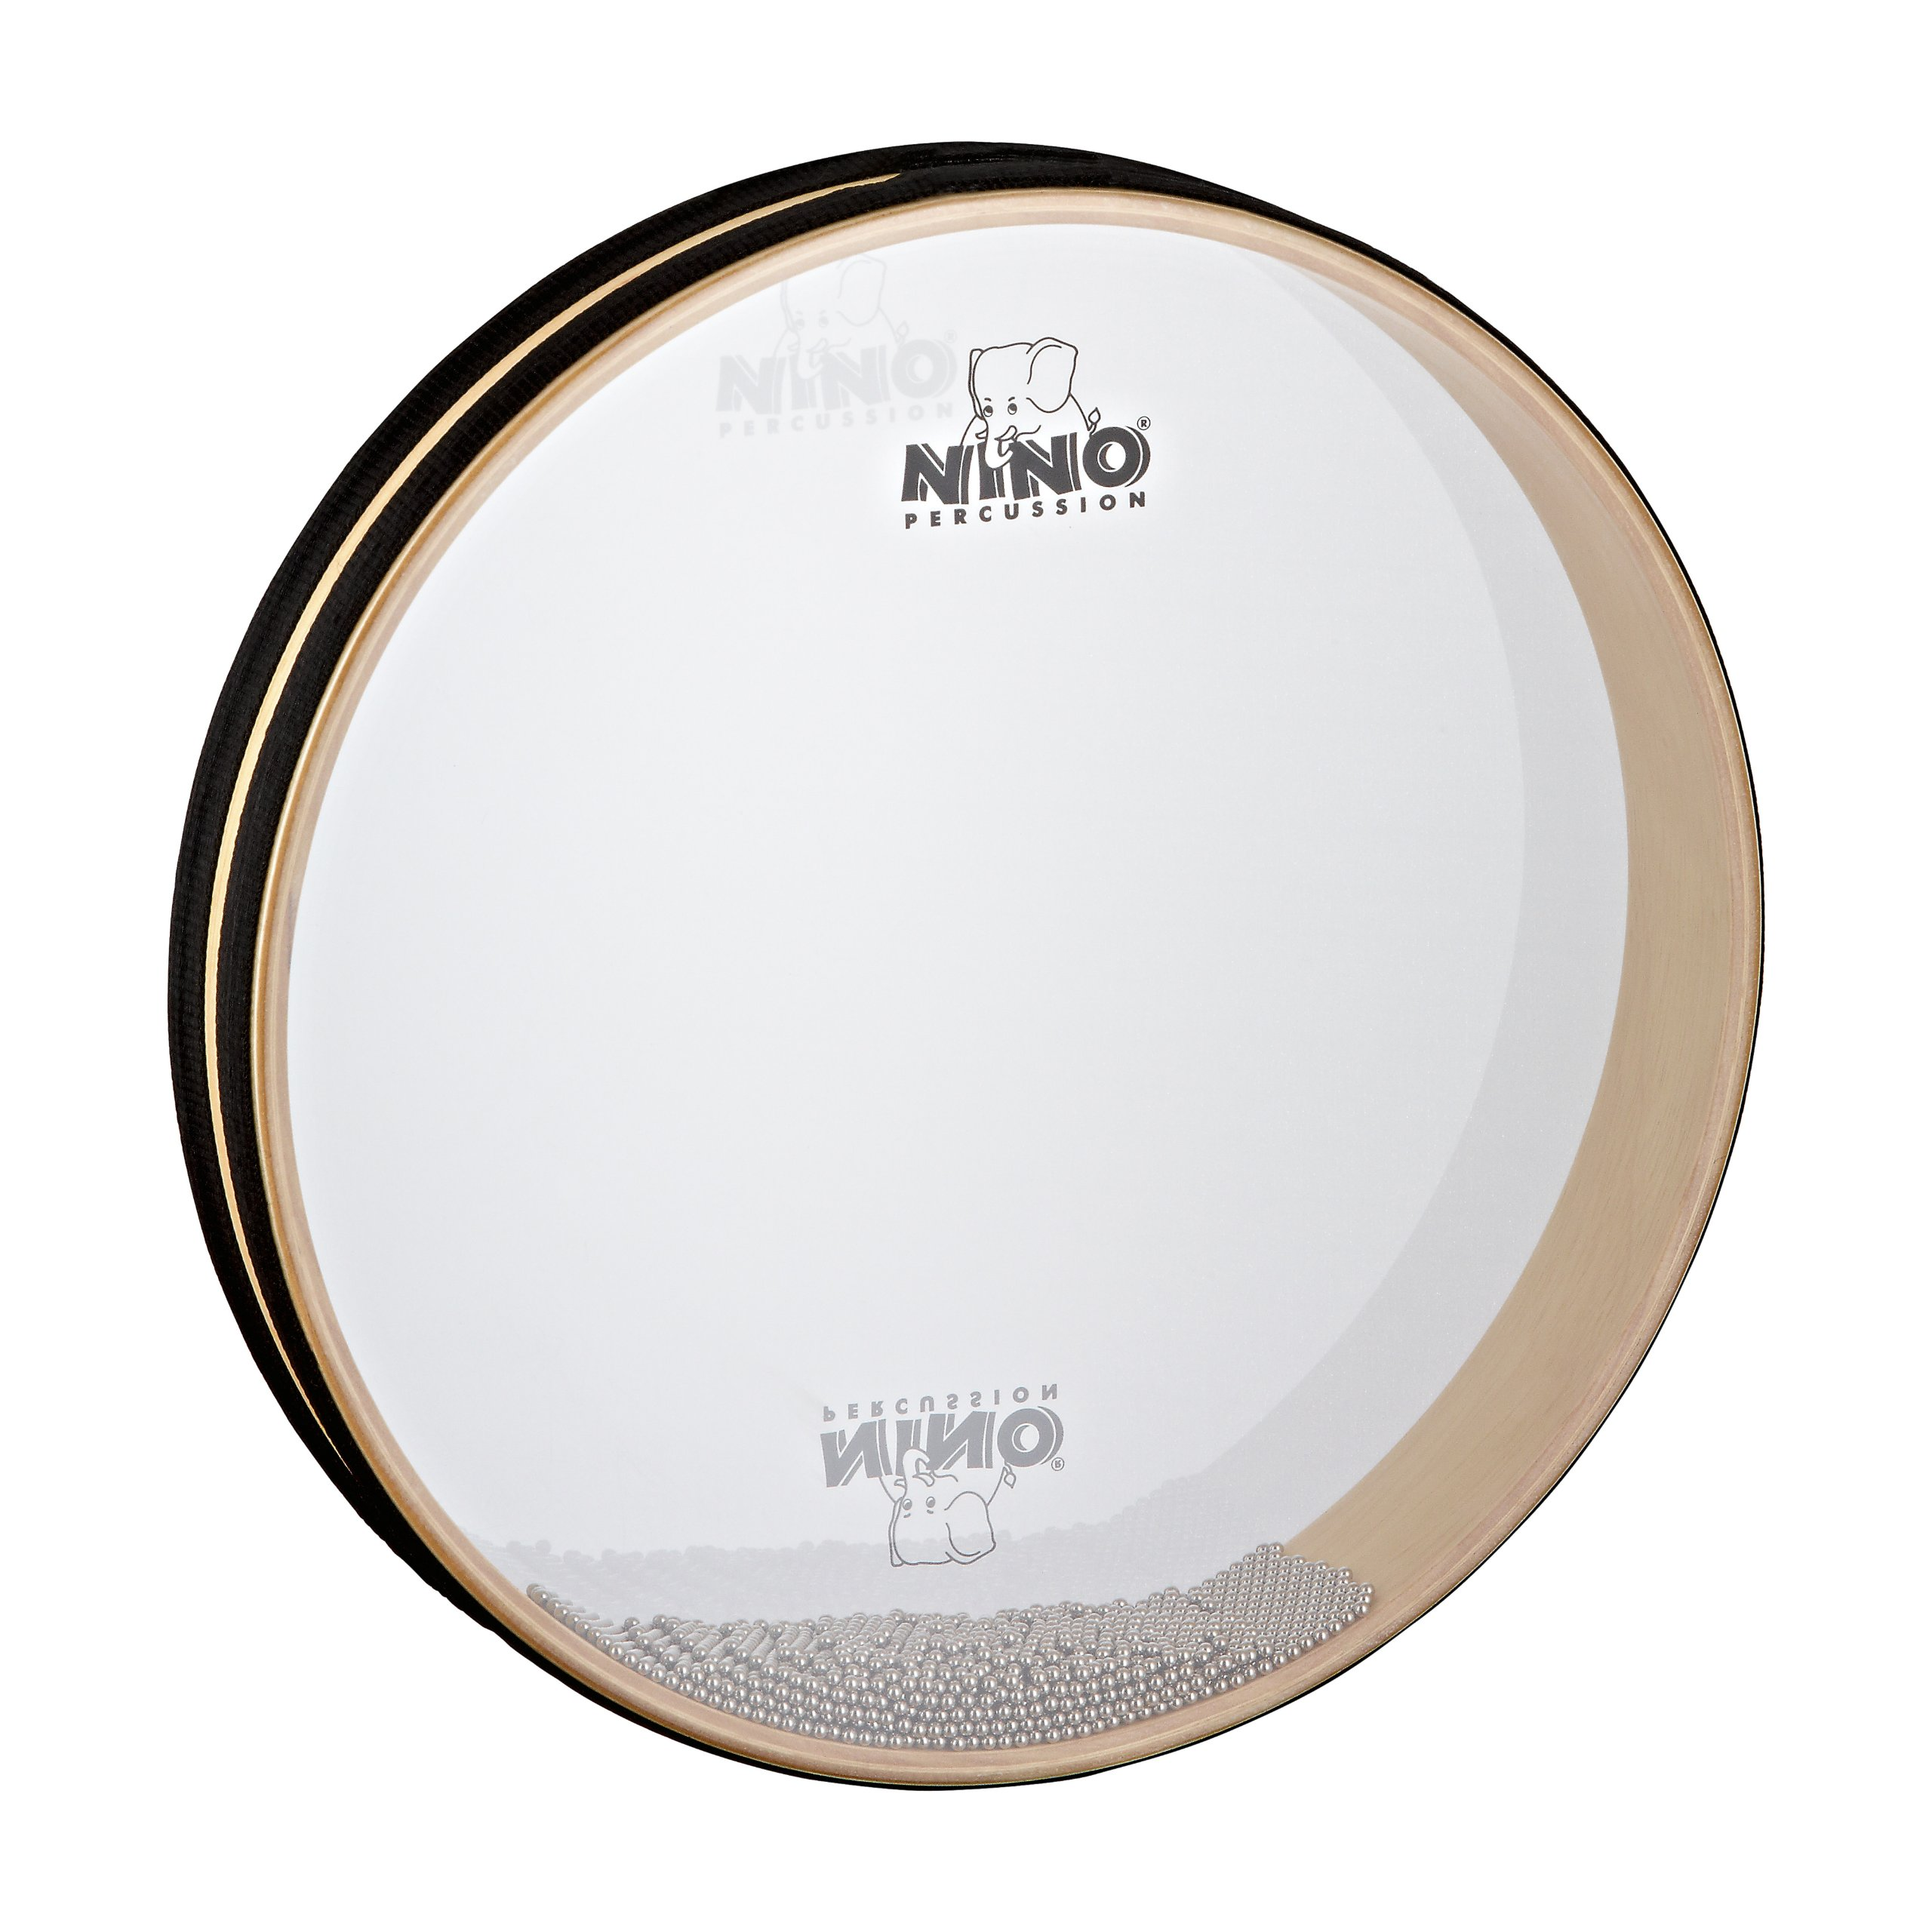 Nino Percussion NINO35 12-Inch Sea Drum with Synthetic Head, Natural Finish